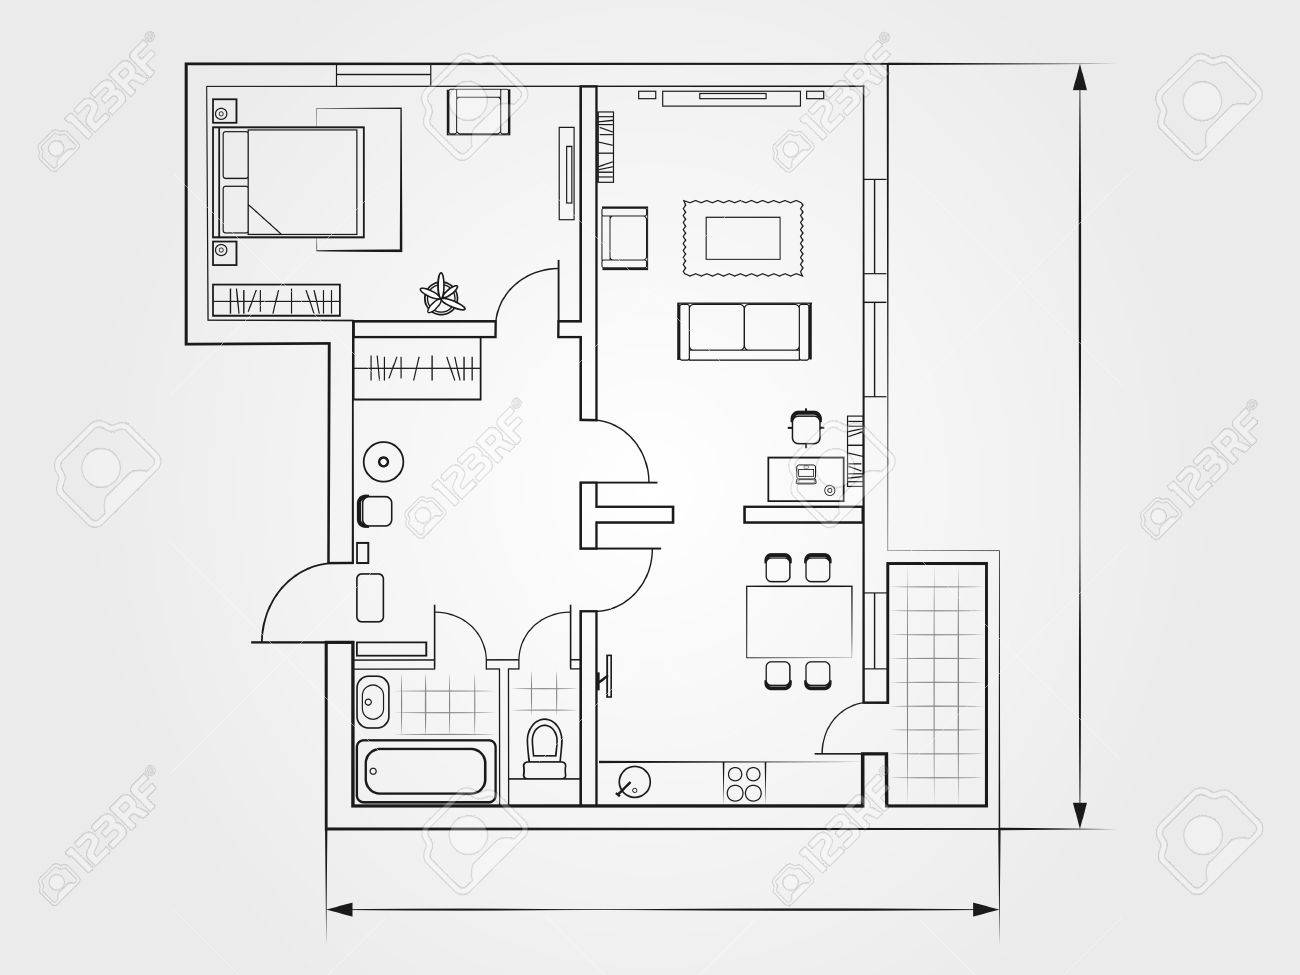 the architectural plan. the layout of the apartment with the furniture in the drawing view - 55883157